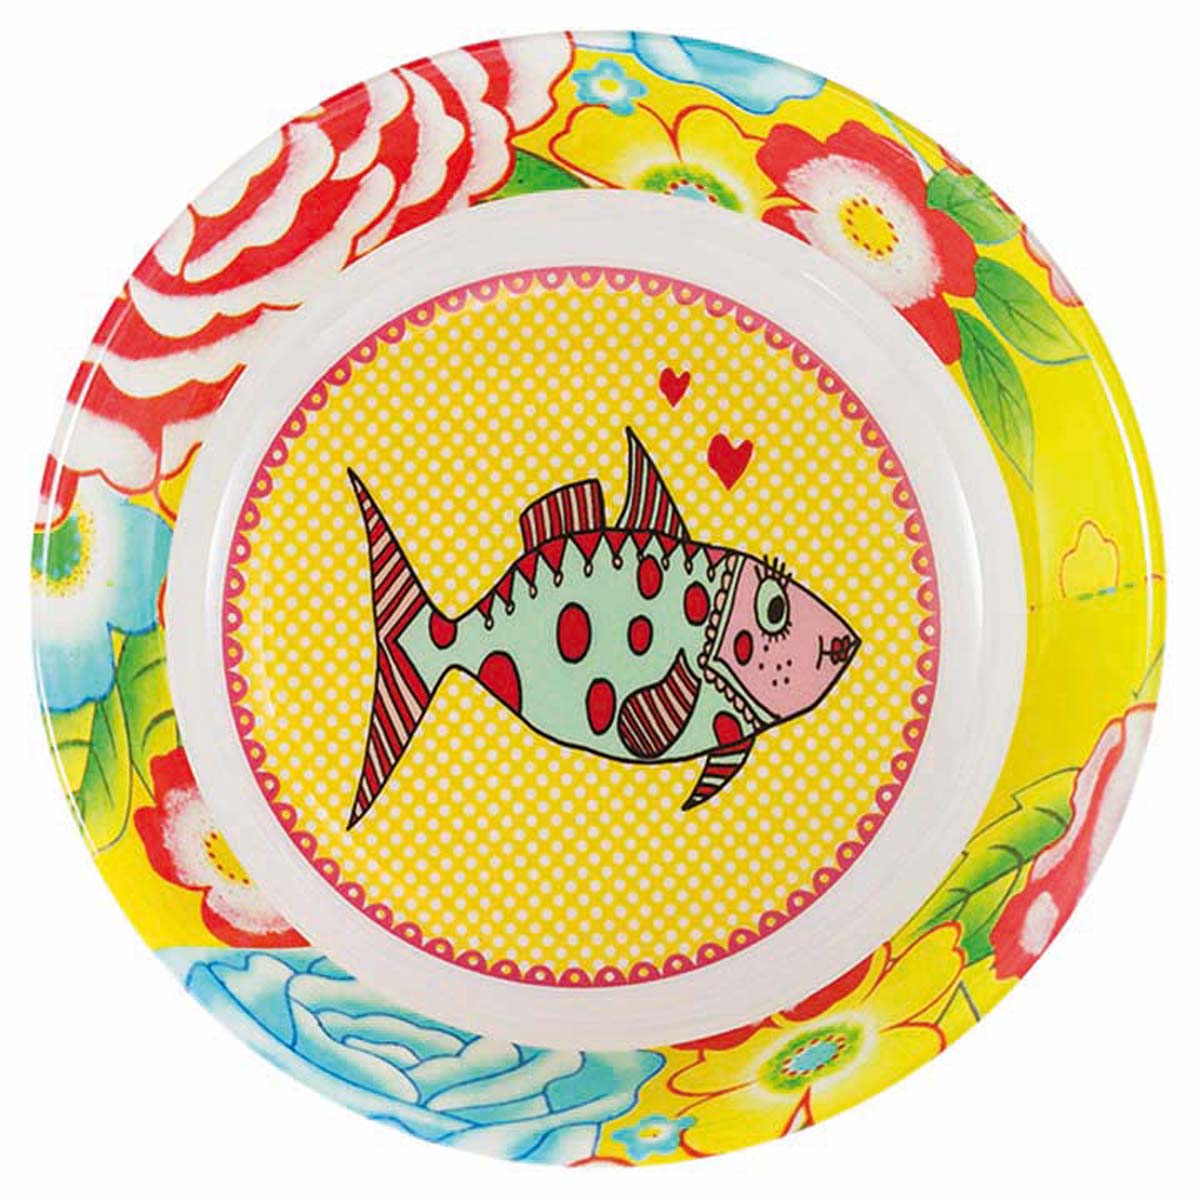 Assiette creuse mélamine \'Saperlipopette\' jaune multicolore (Mrs Fish) - 19x5 cm - [R0635]